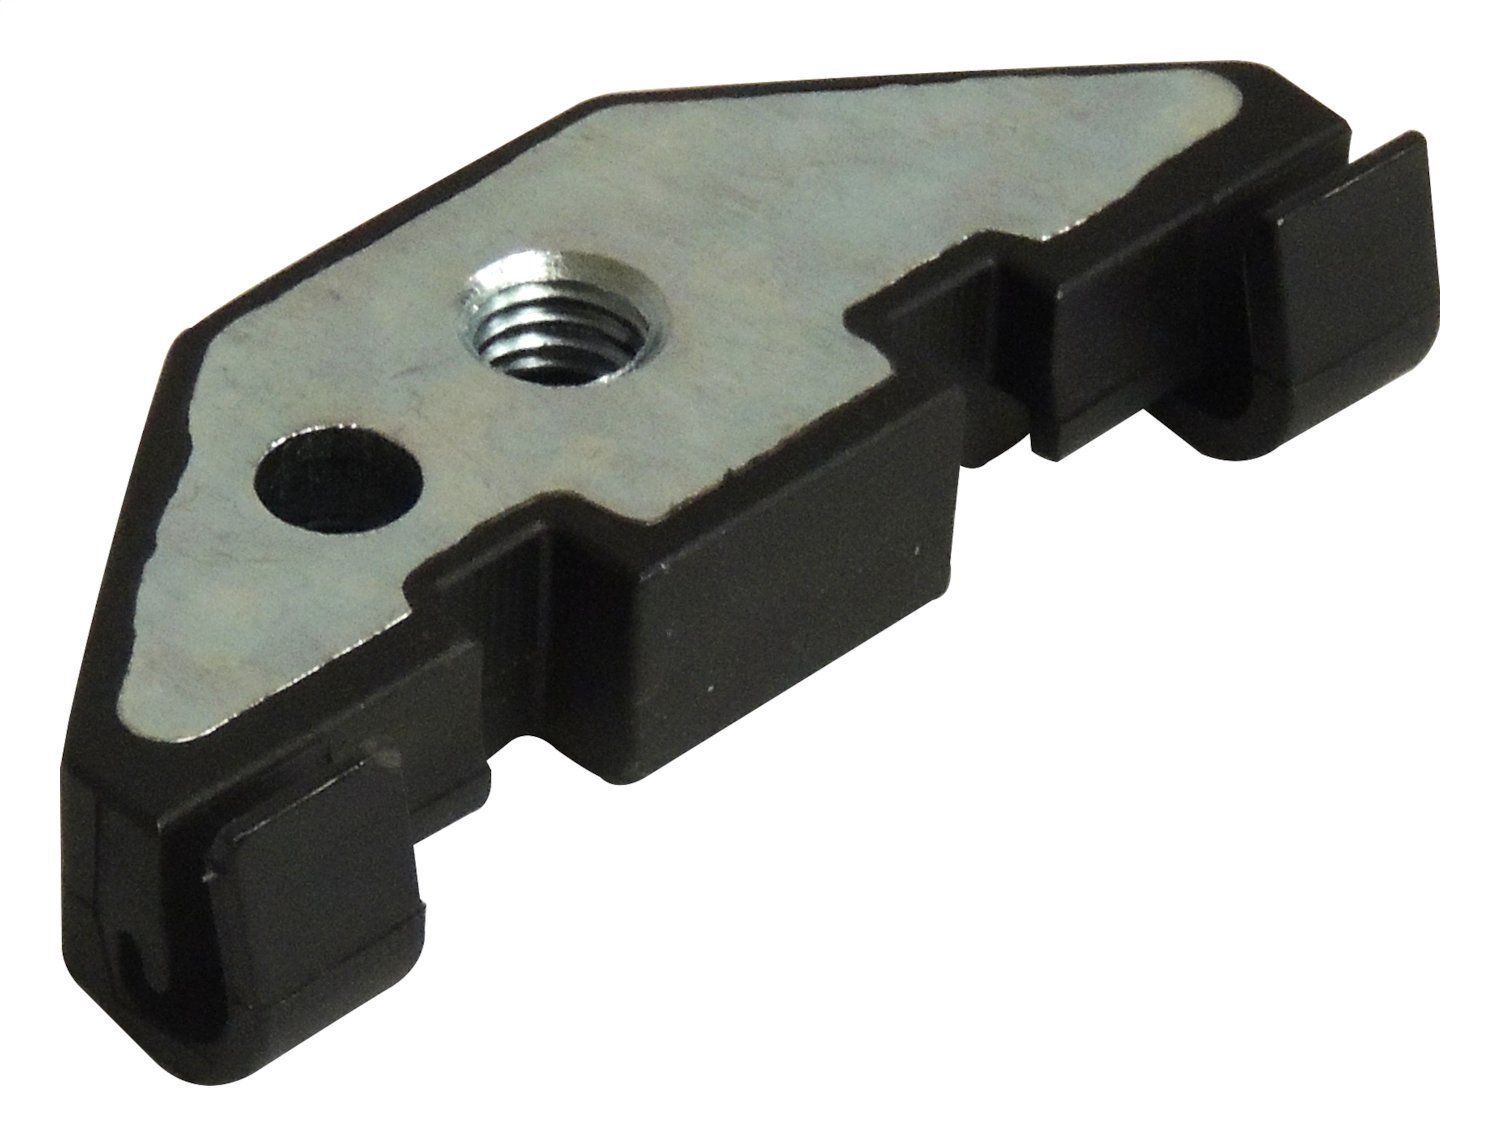 Jeep Wrangler JK Hard Top Hold Down Retainer Nut Crown Automotive